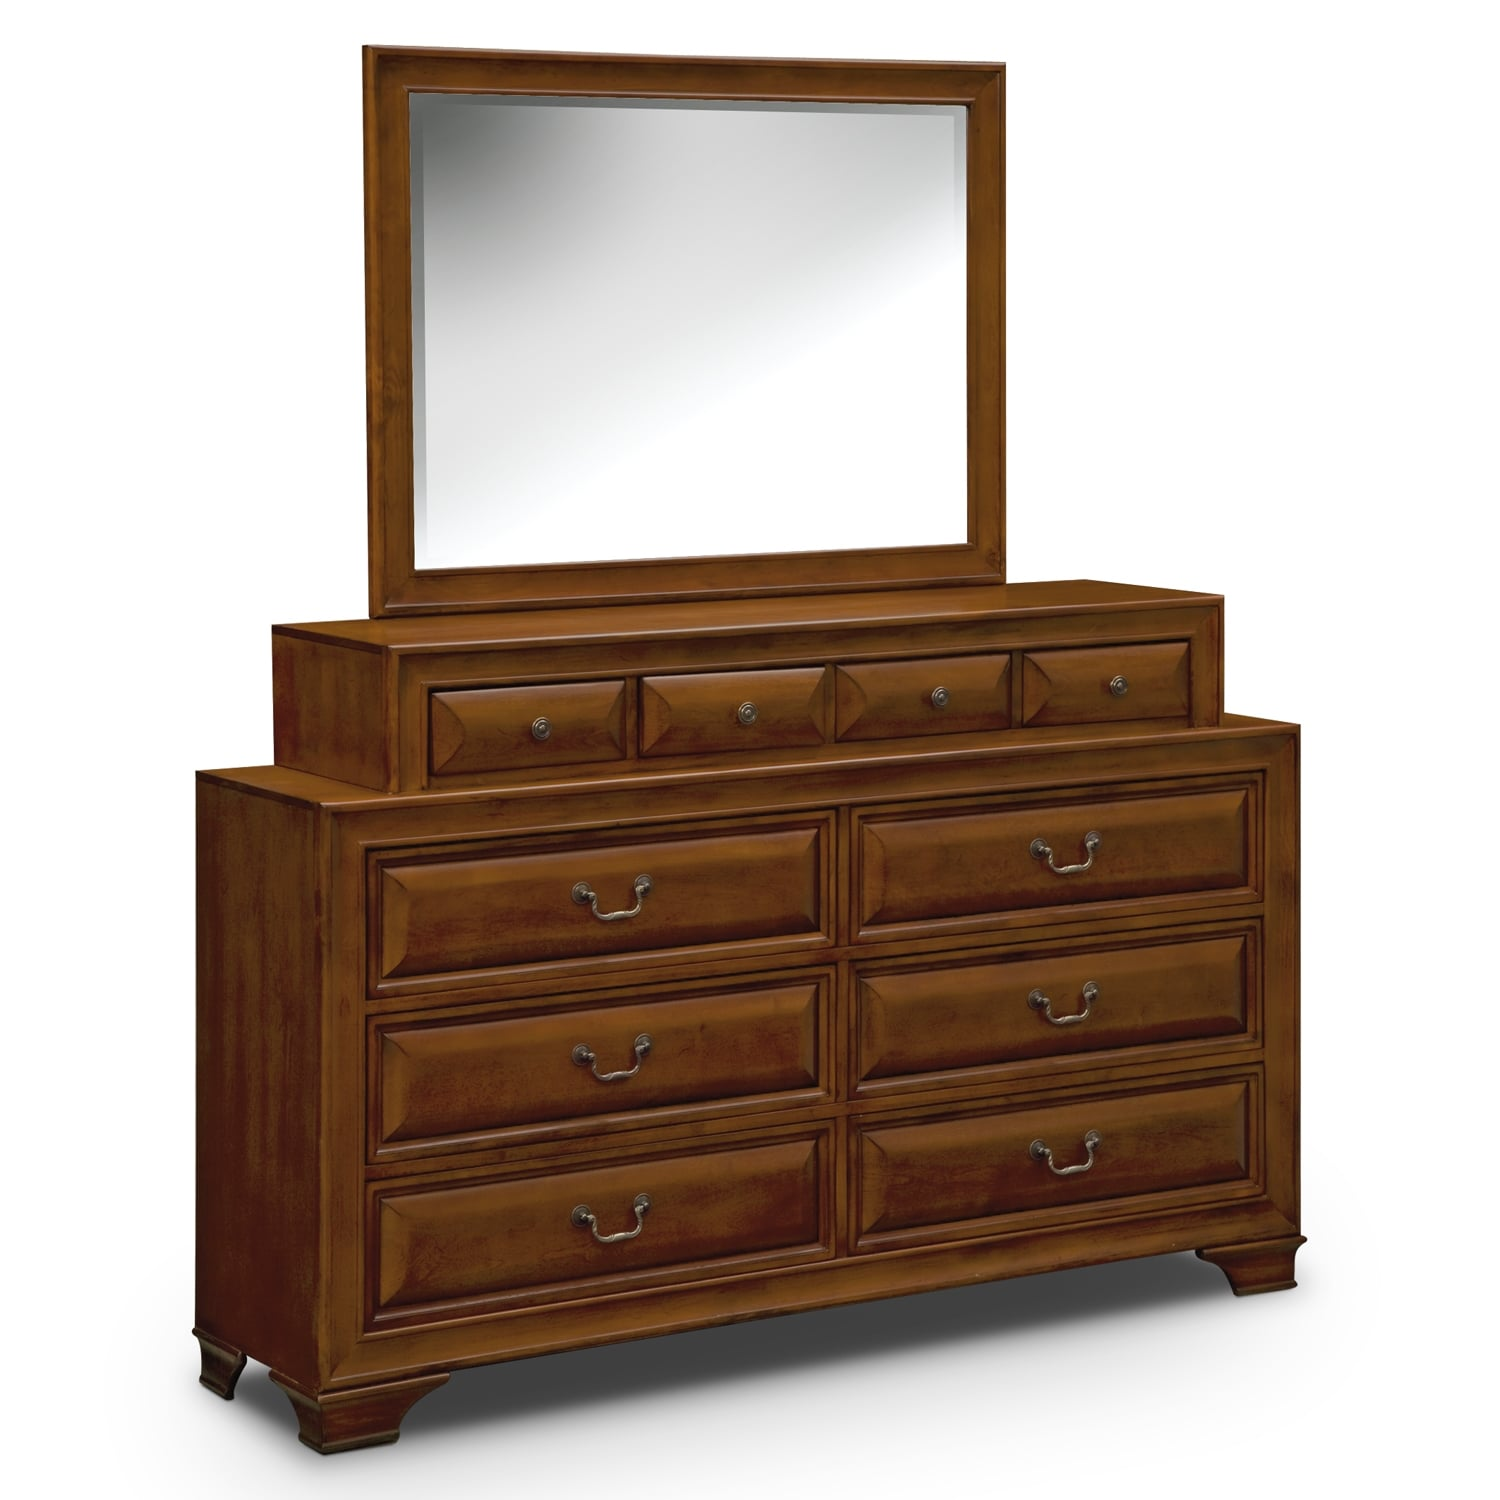 Bedroom Furniture - Sanibelle Dresser and Mirror - Pine